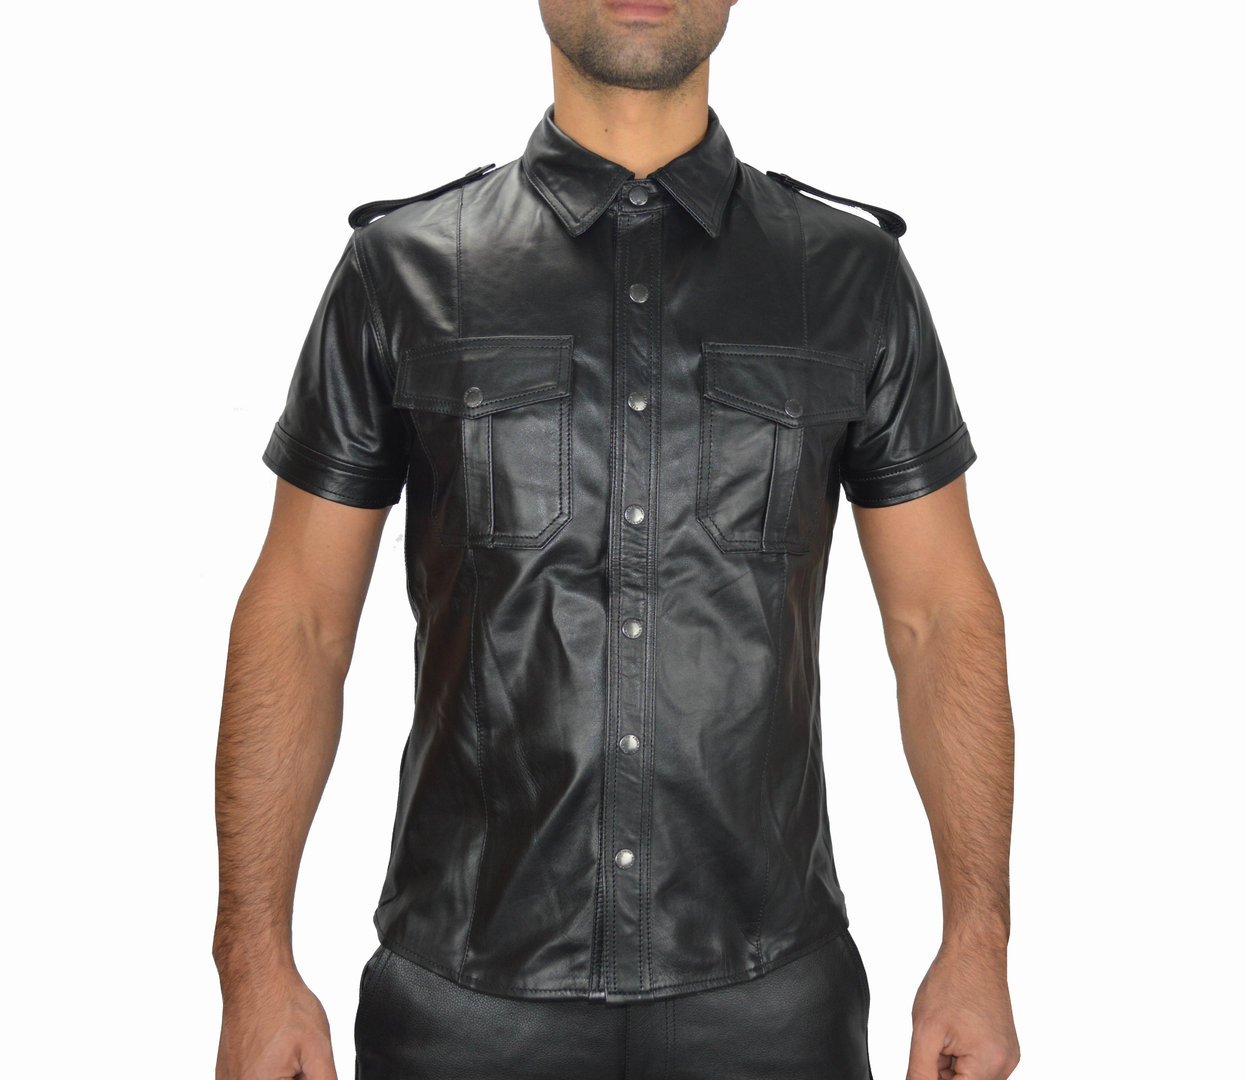 Leder Hemd,Lederhemd,Leather Shirt